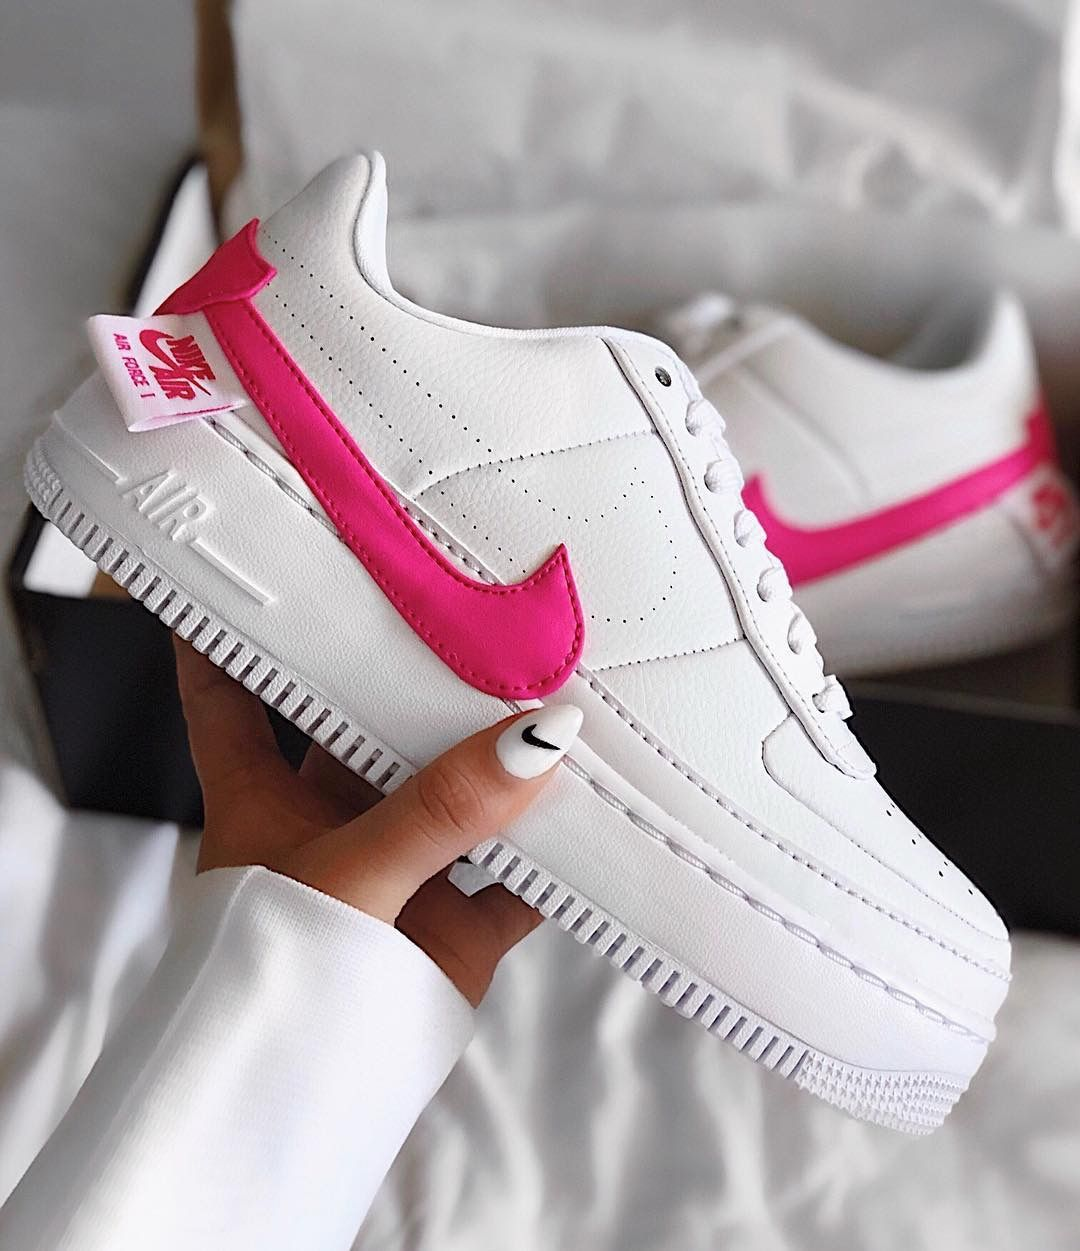 Pin by yazmin vasquez on Ƙ í ϲ ƙ Տ Nike shoes air force